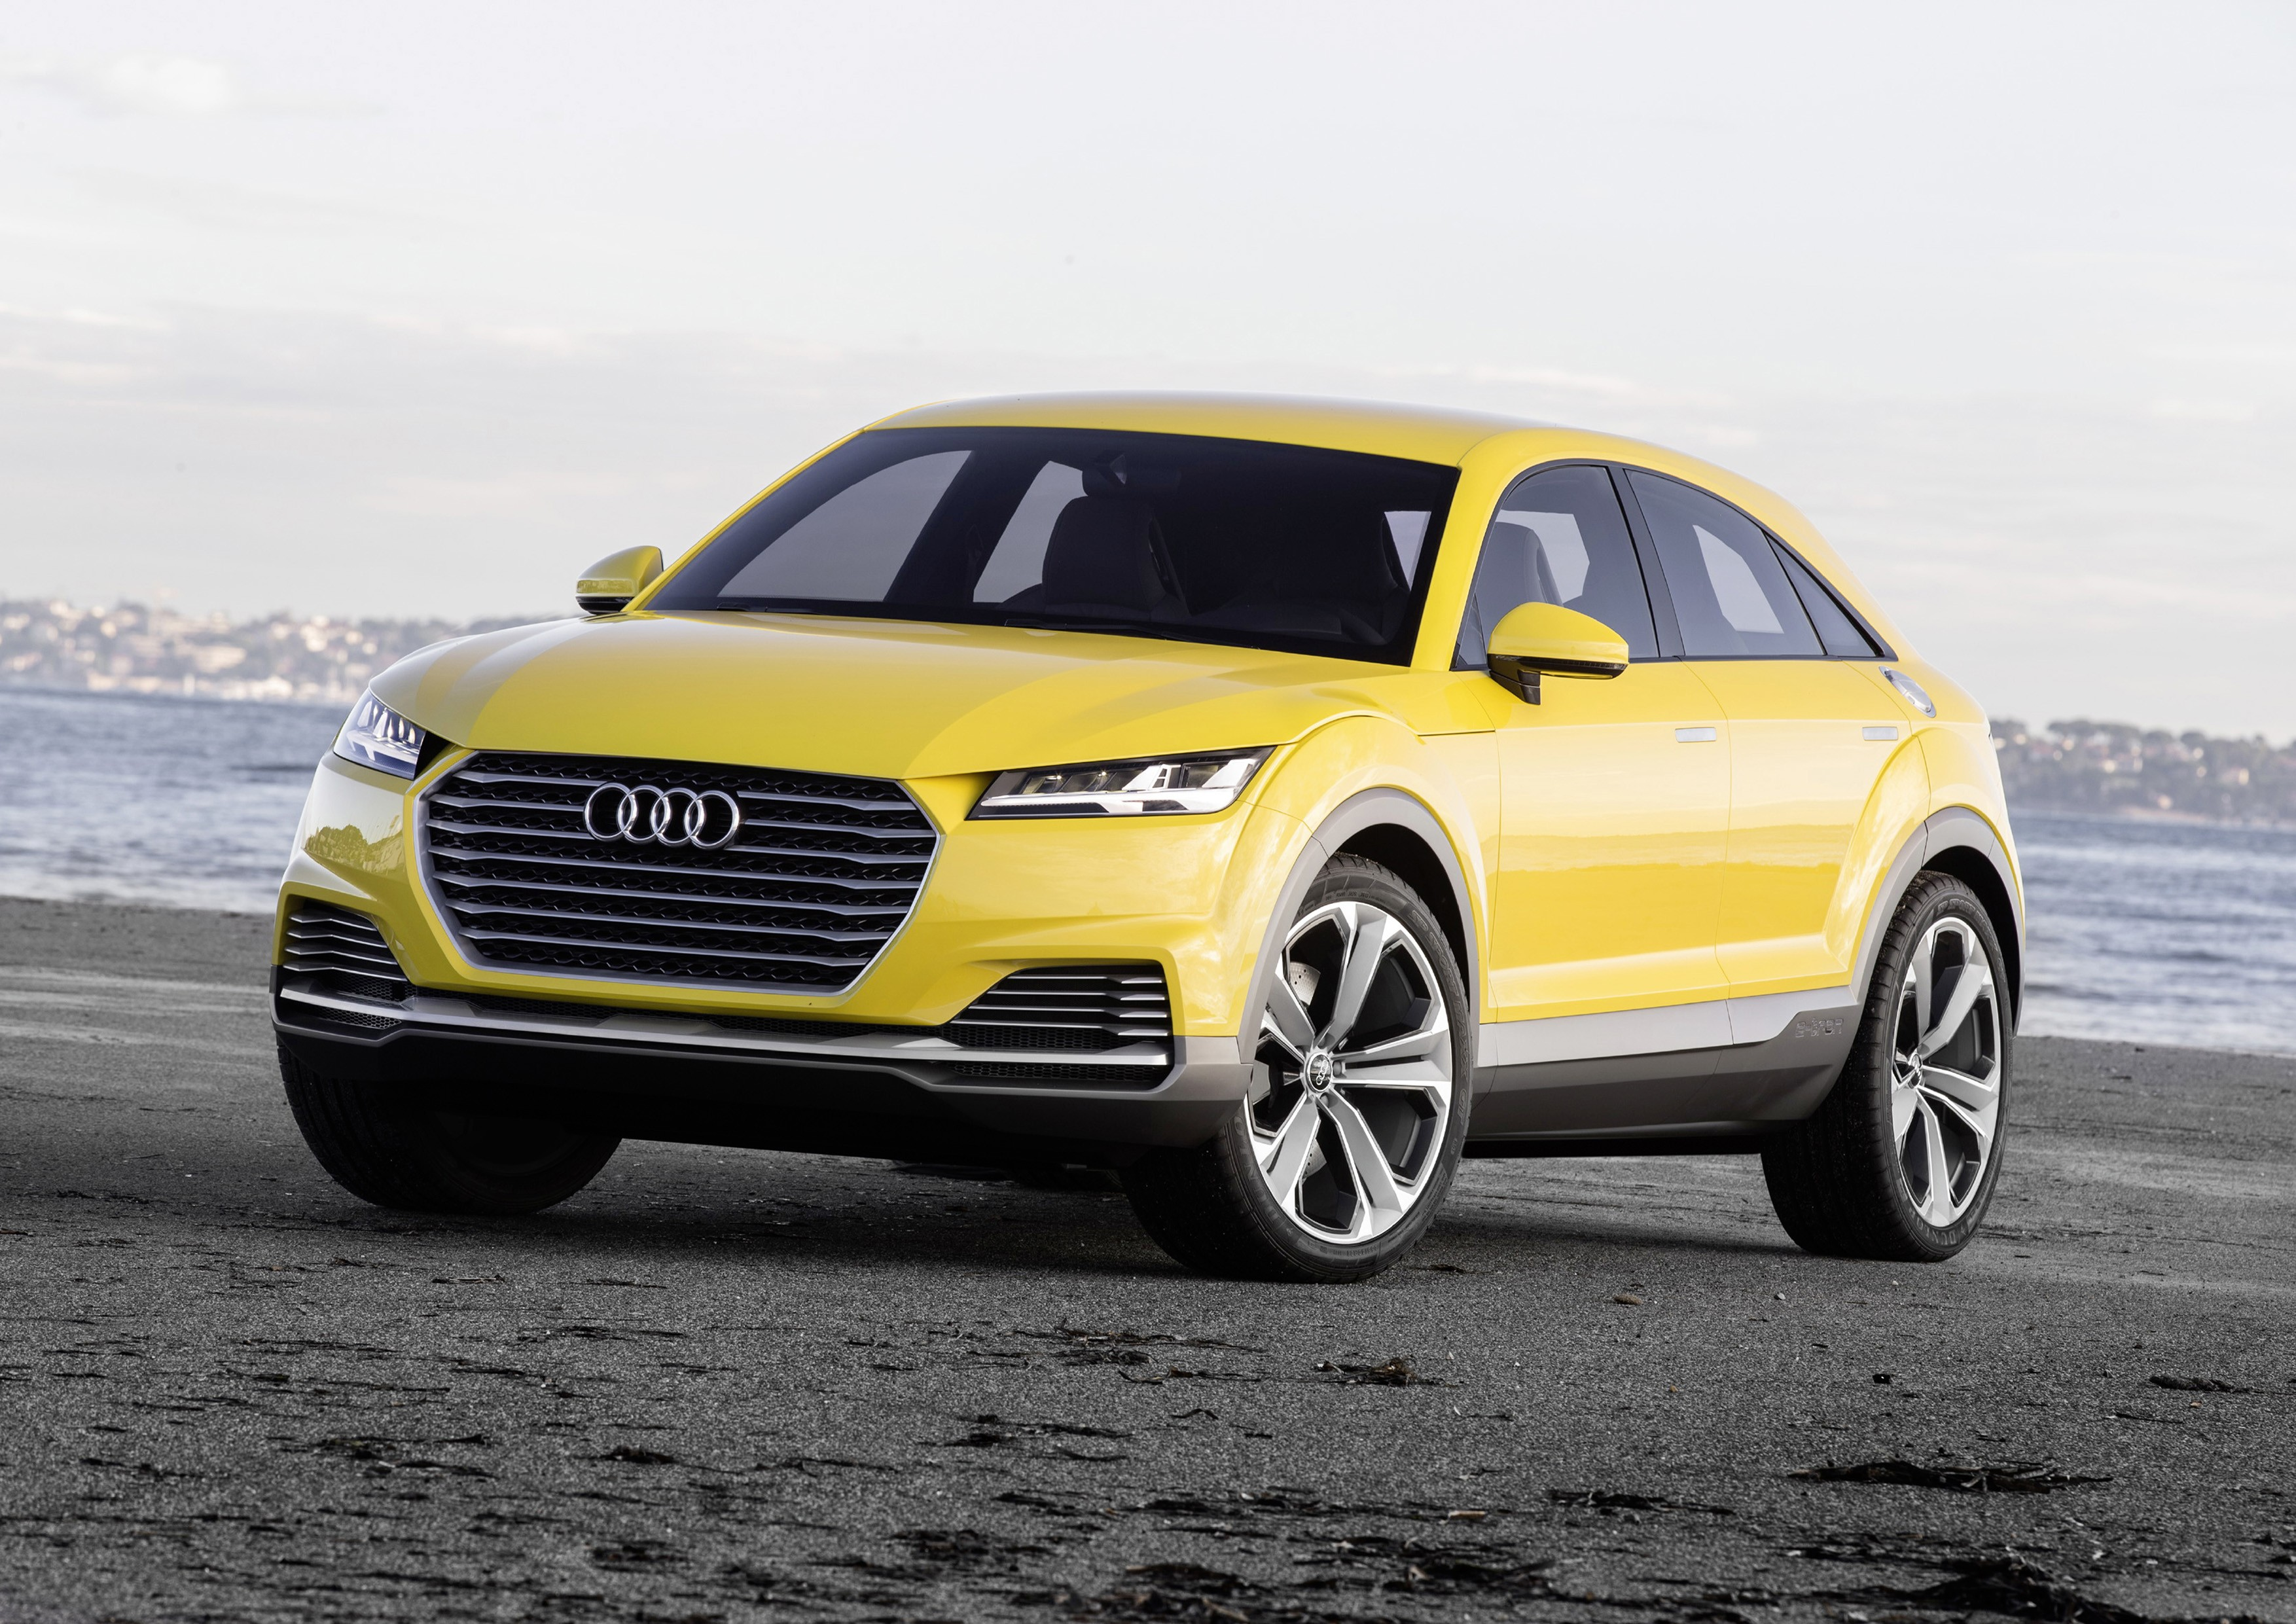 2017 Audi TTQ Rendered Autoevolution